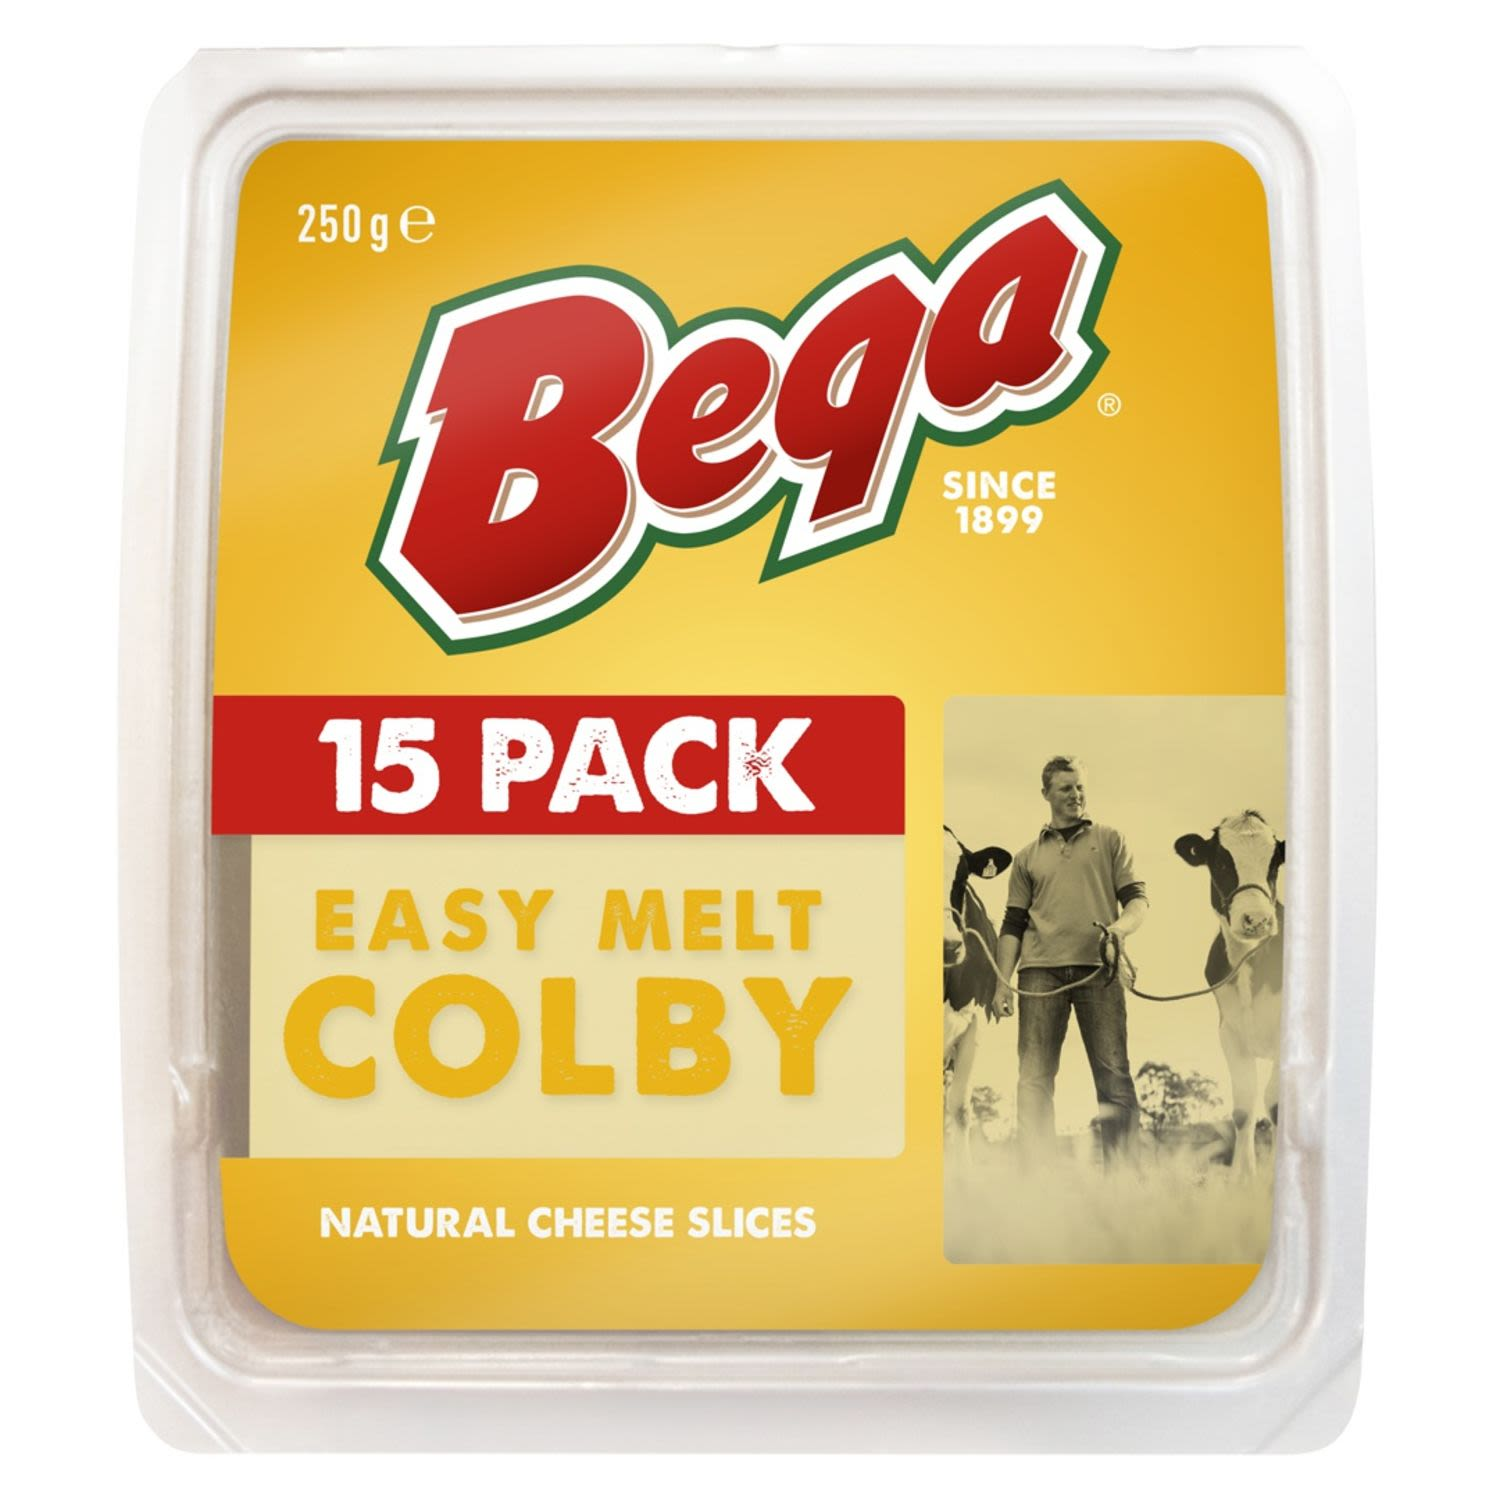 Bega Easy Melt Colby Natural Cheese Slices, 15 Each